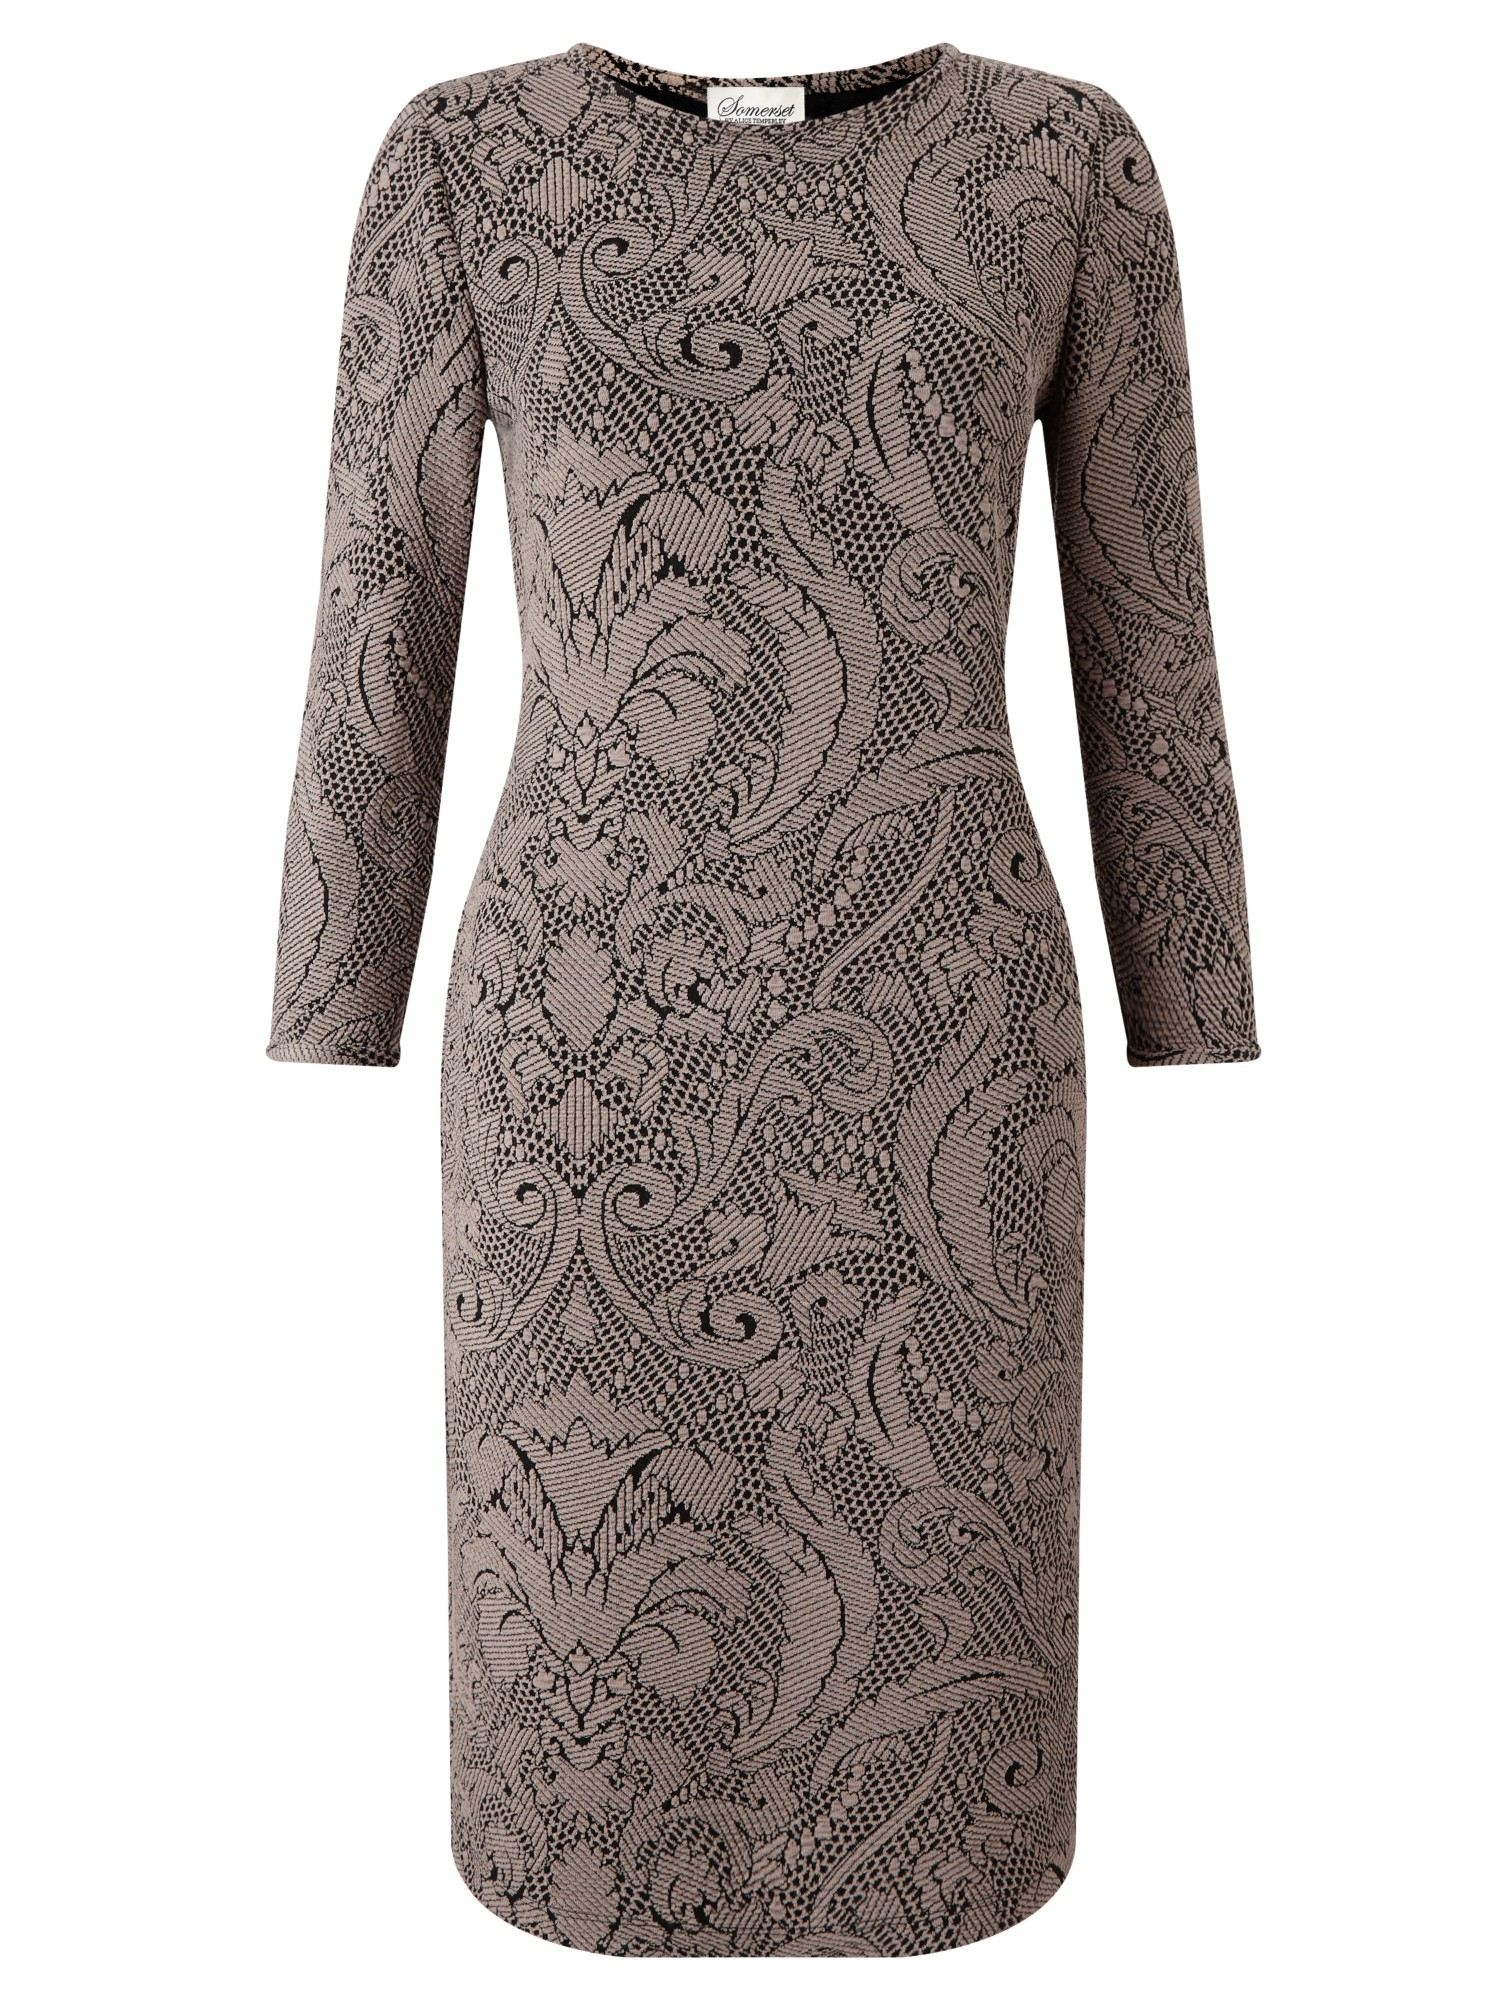 40b548d0b1569 Somerset by Alice Temperley Textured Bodycon Dress in Natural - Lyst